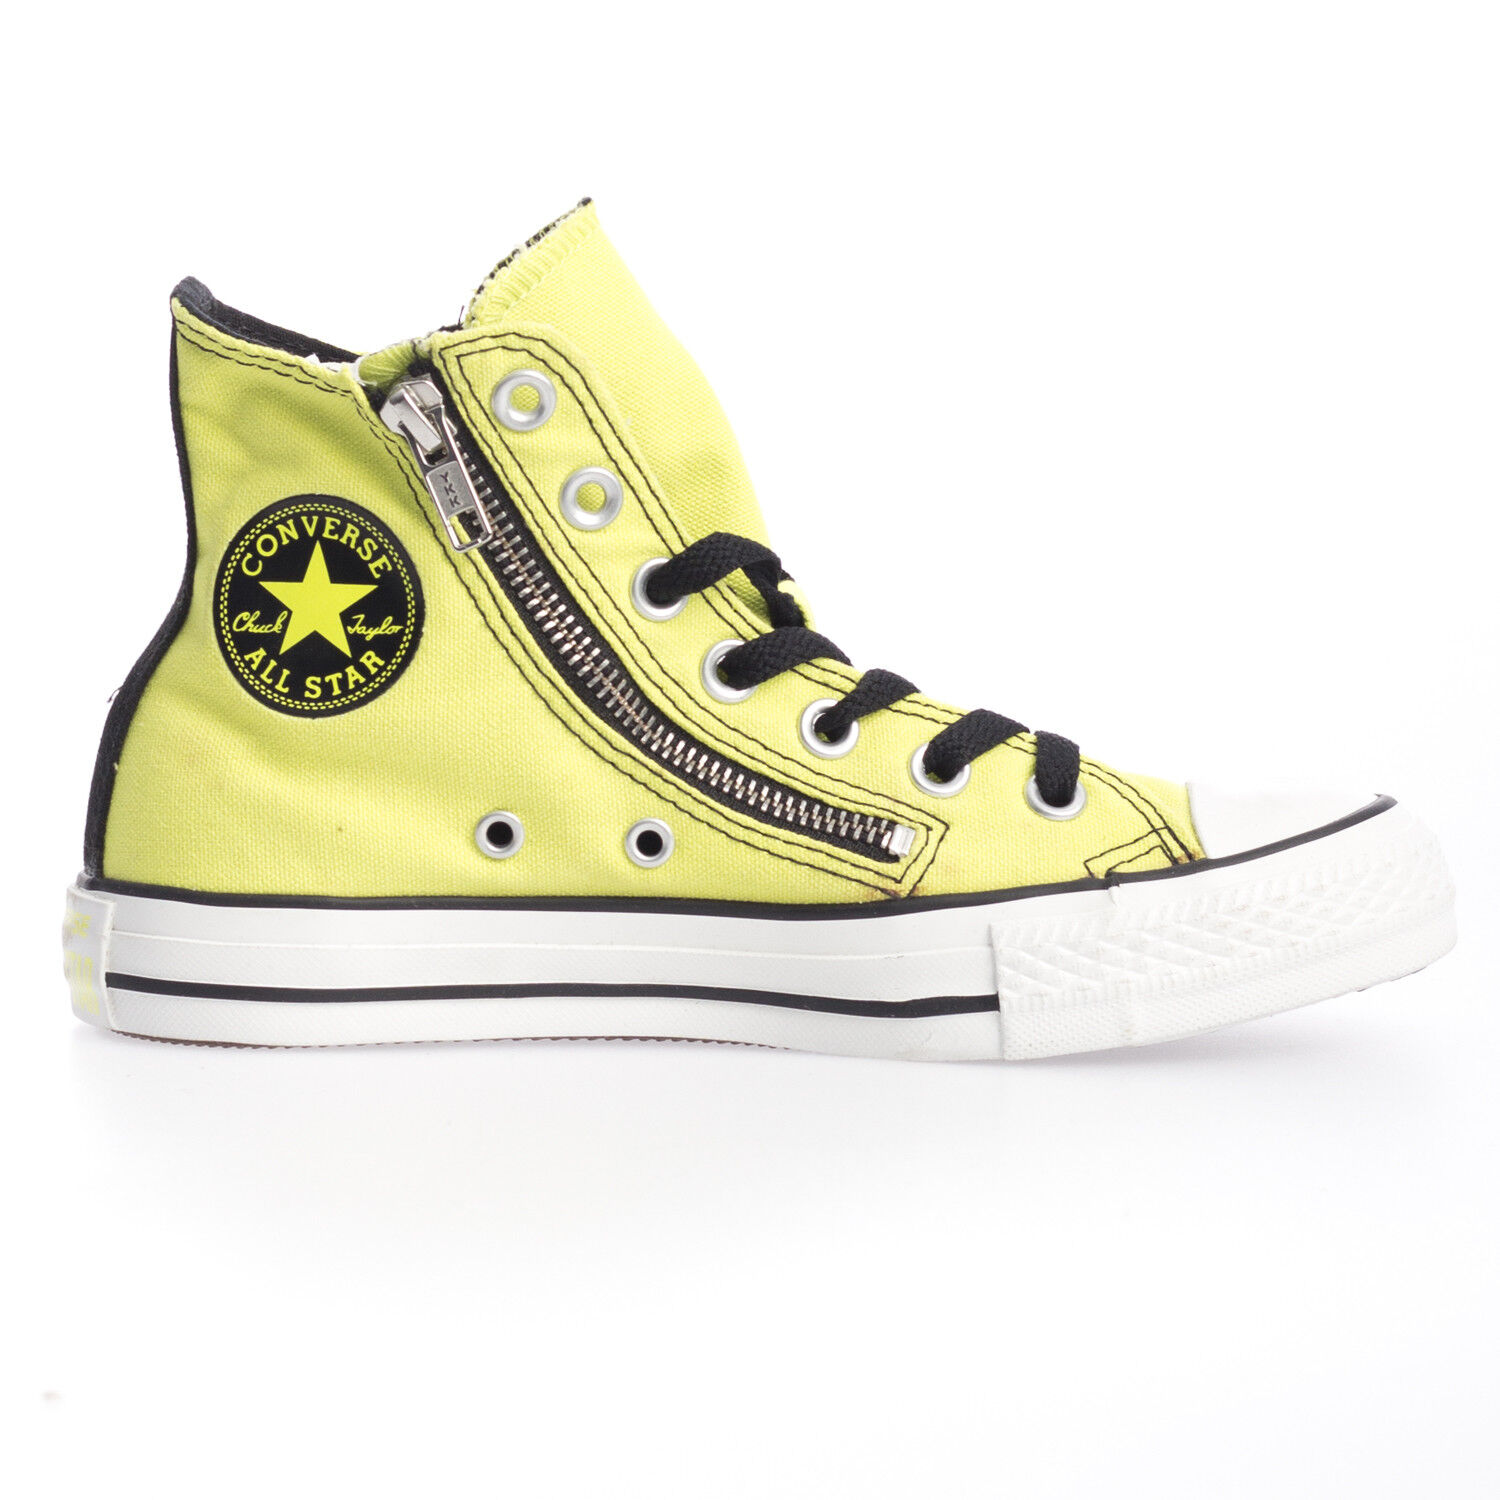 Details about Converse Chuck Taylor Hi Top Yellow Side Zip Damaged Slight Marks Defective